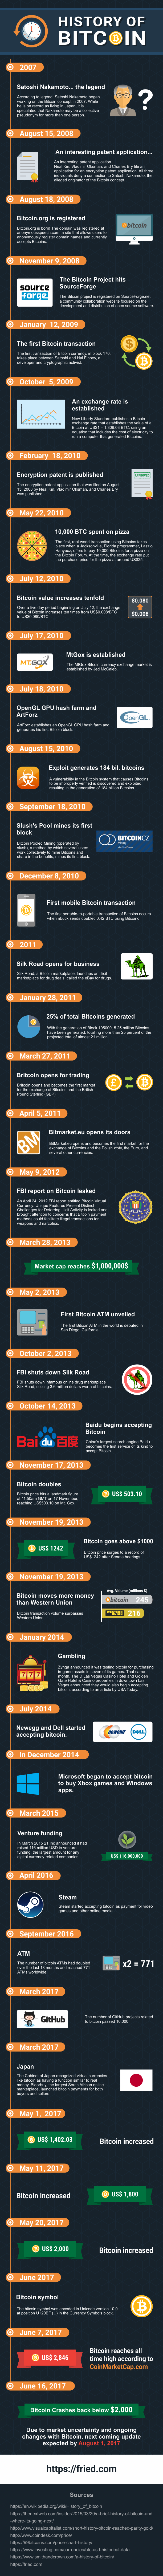 QUE.com.History-of-Bitcoin-Infographic